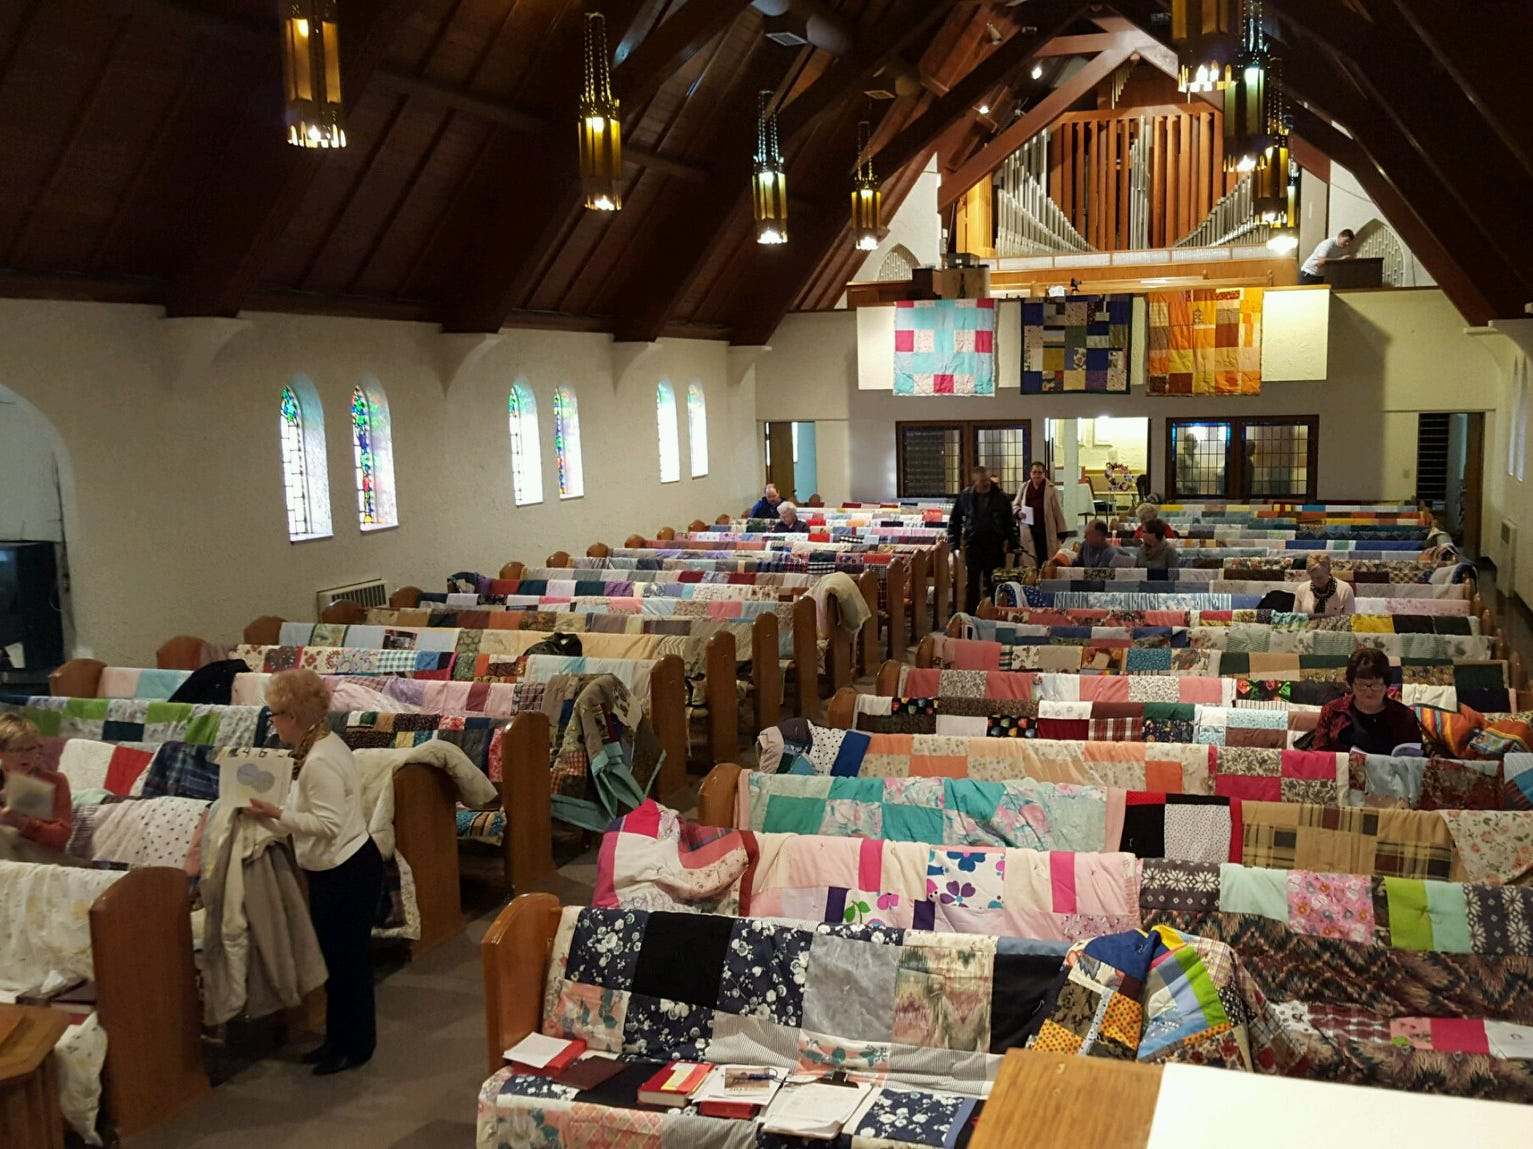 The First Lutheran Church donated 187 quilts, which could end up covering Syrian refuges or Nepali earthquake victims or Mali families fleeing food shortages and religious conflicts.